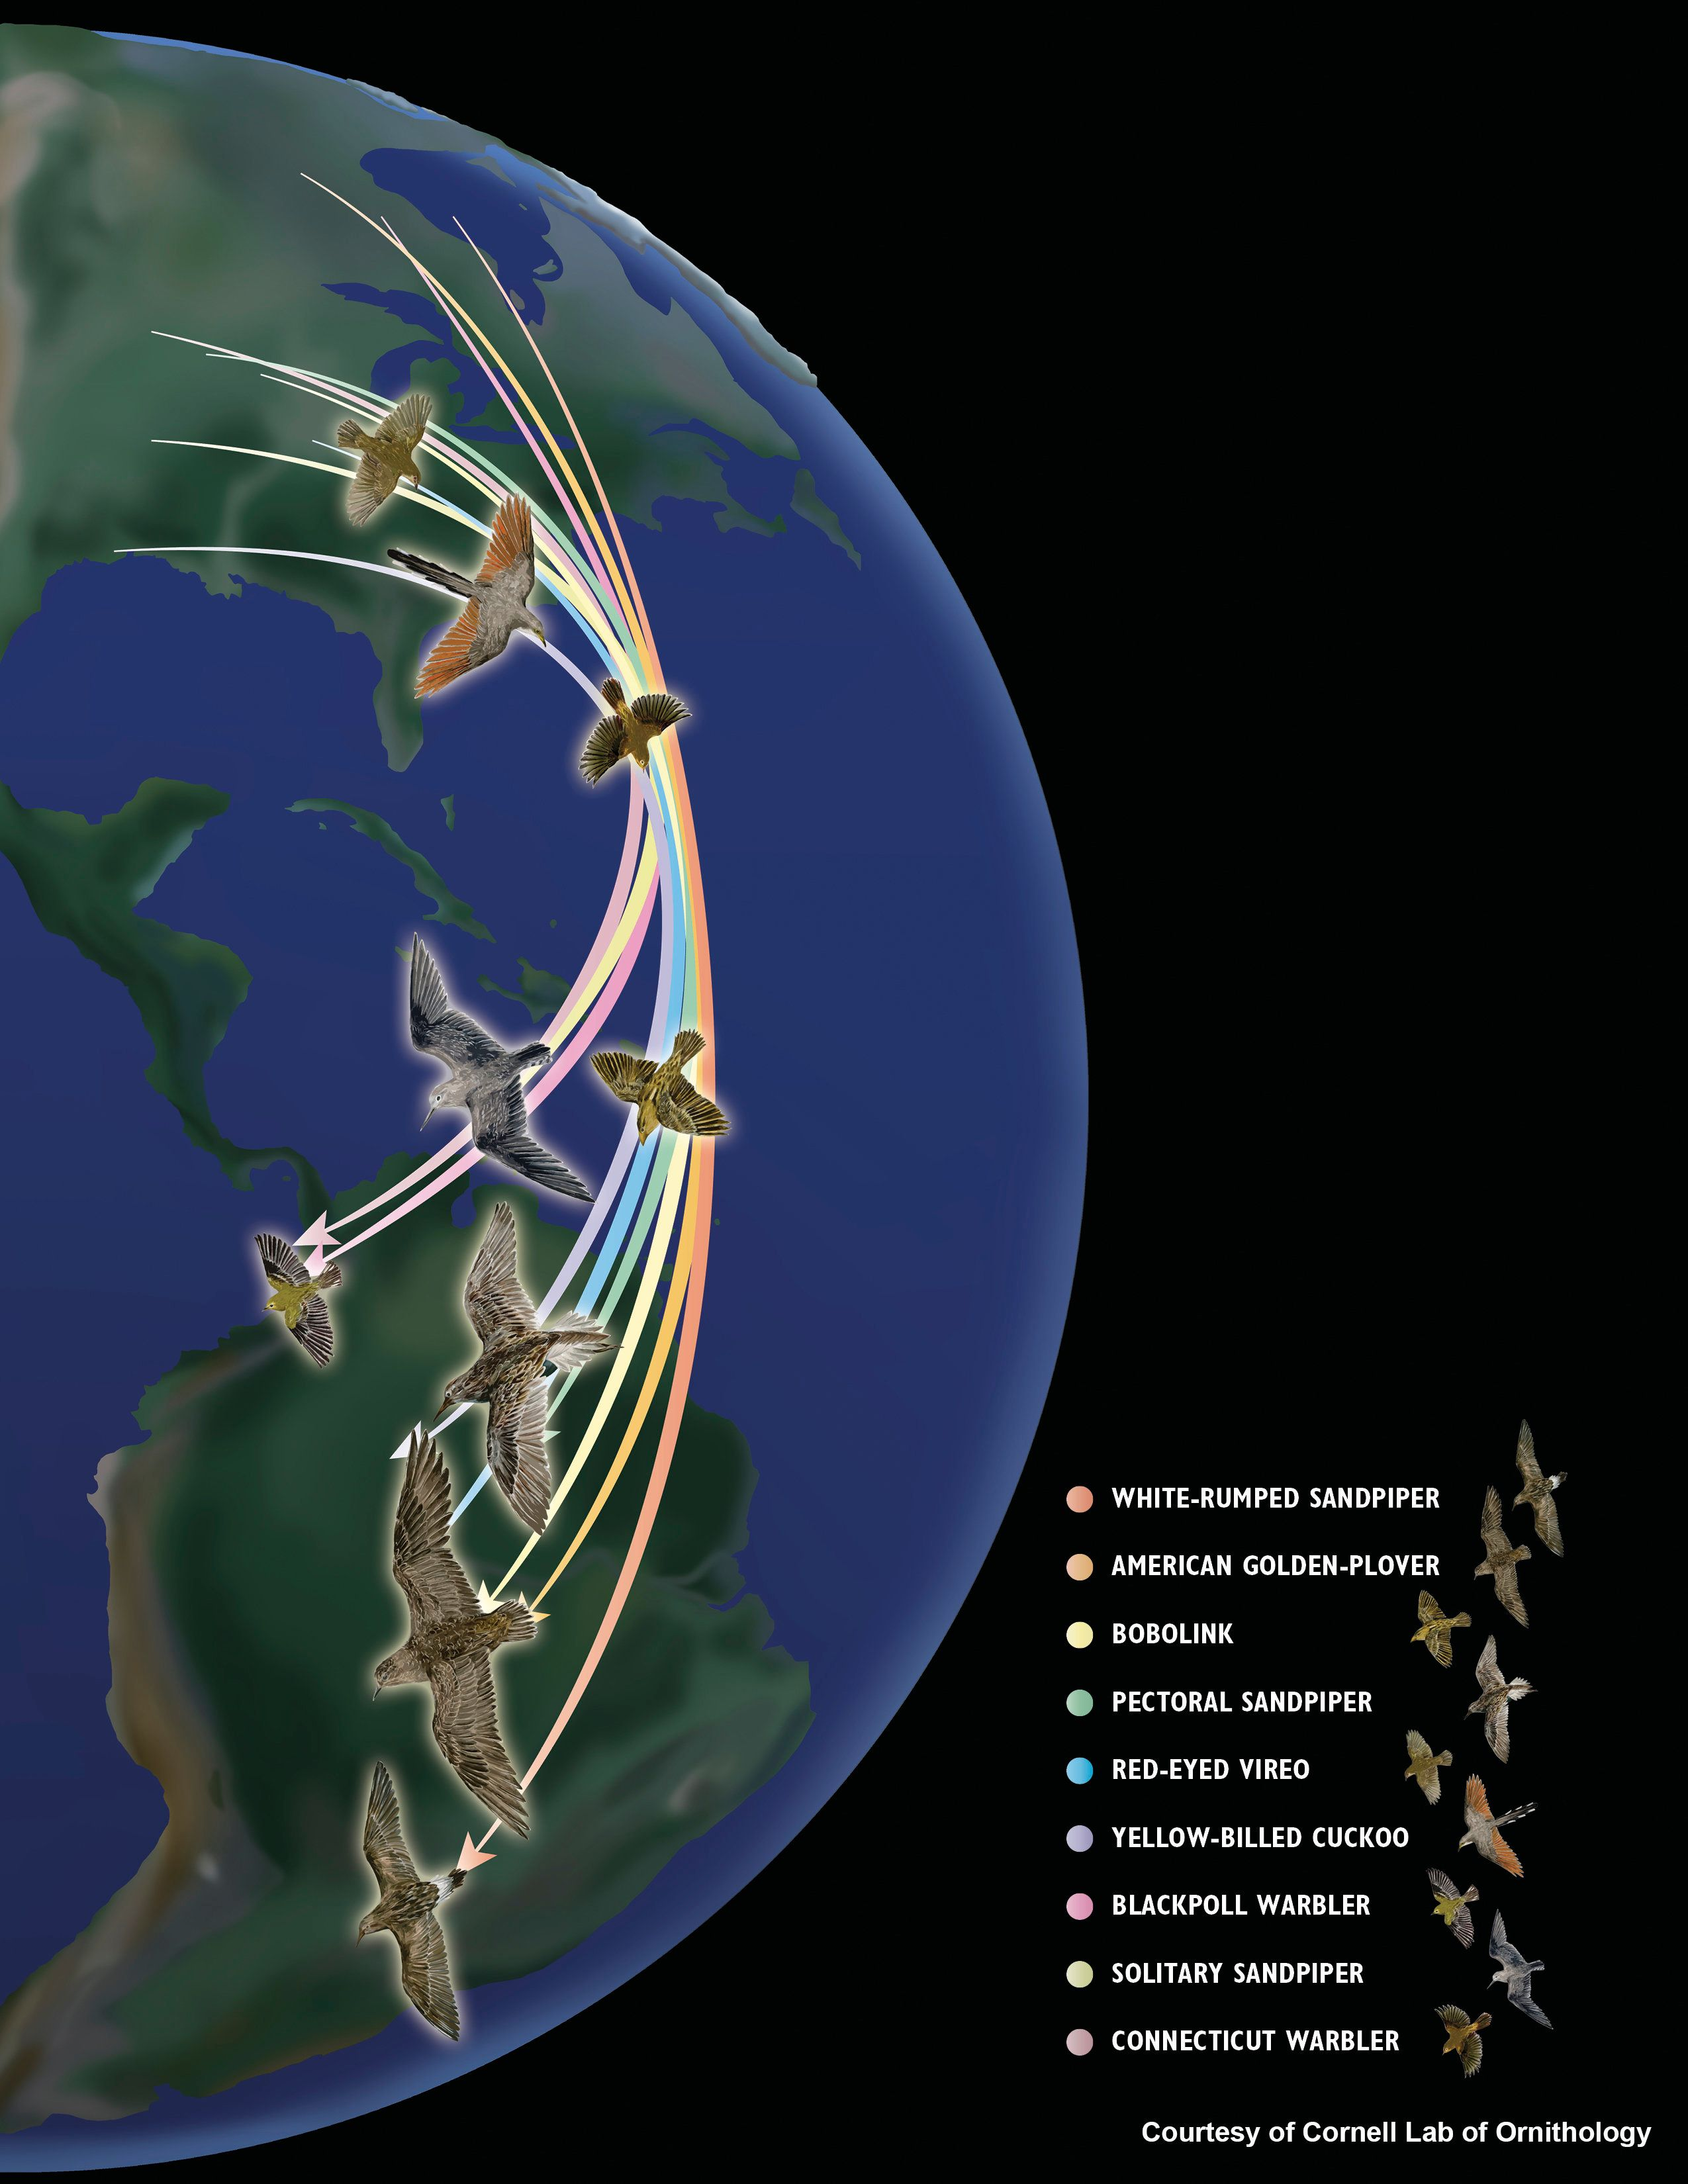 Migratory patterns of birds across North America and South America.